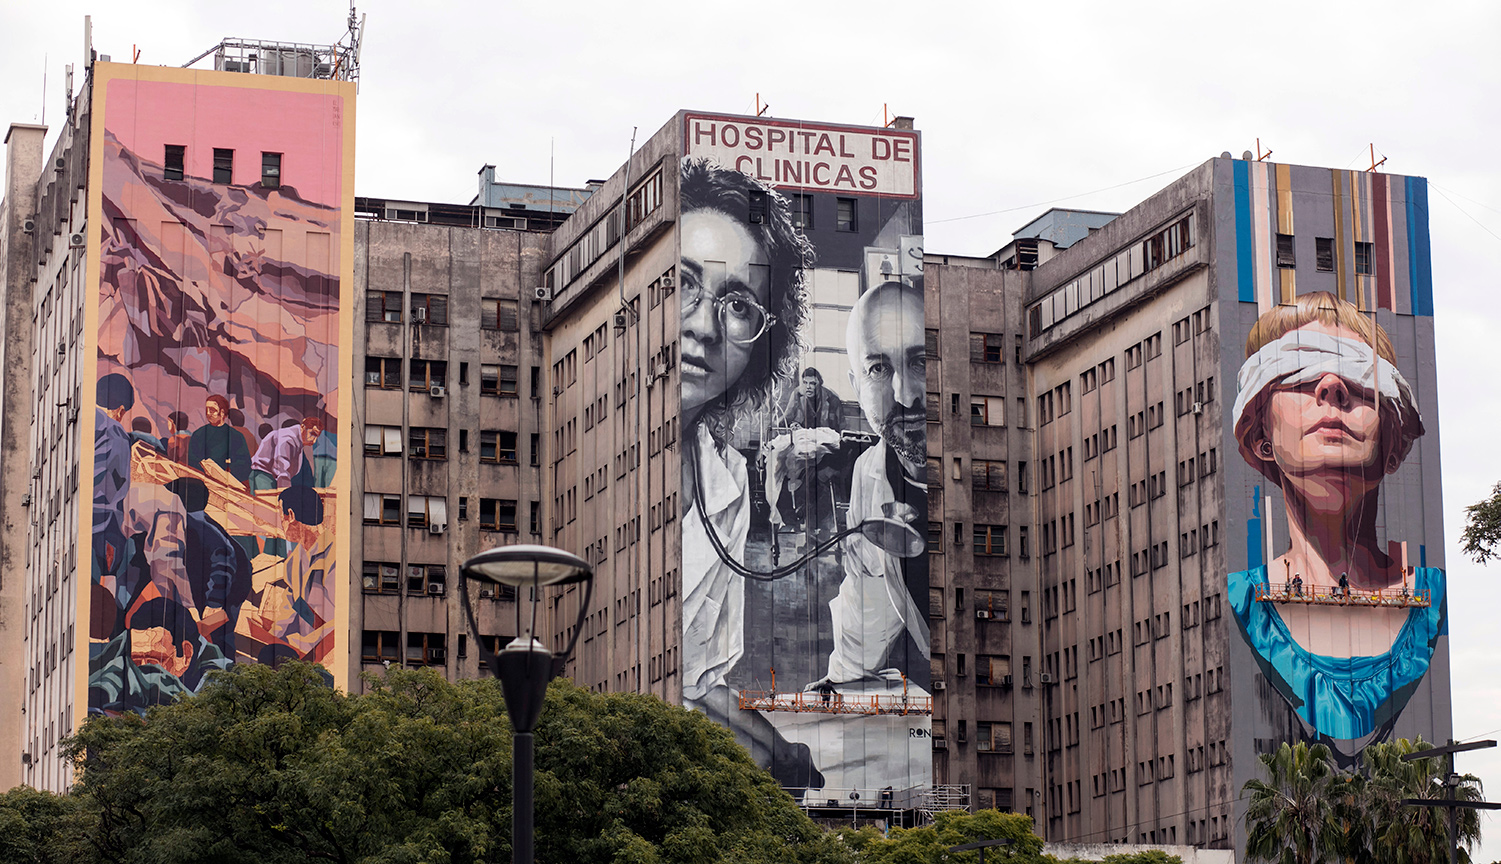 Three allegorical murals of the victims of the AMIA bombing on the façade of the Hospital de Clínicas on July 18, 2019 in Buenos Aires, Argentina. Ricardo Ceppi/Getty Images.